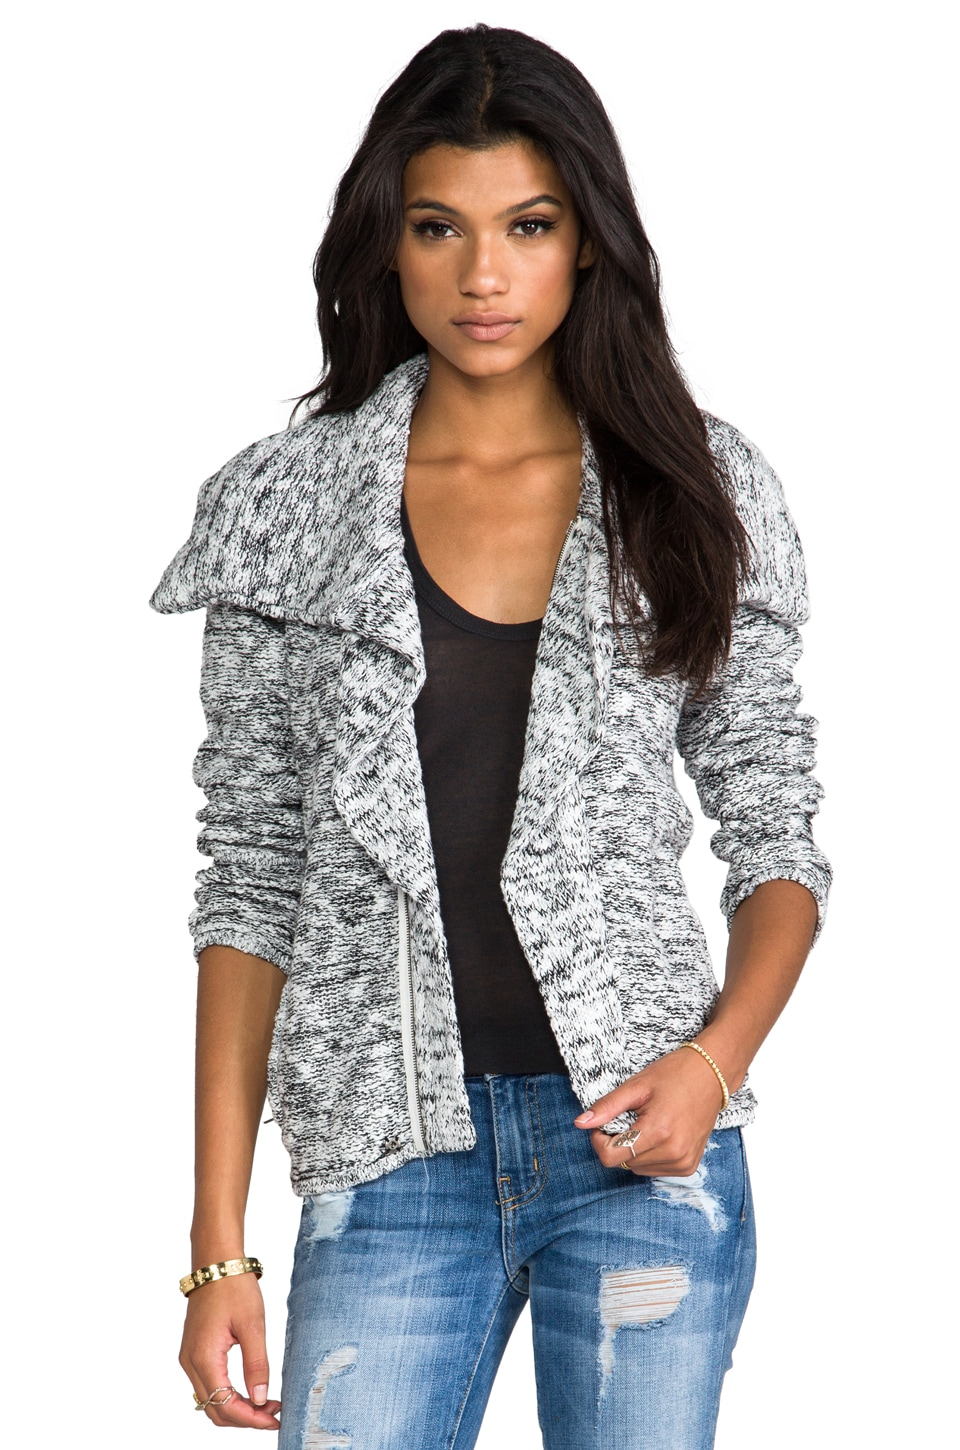 Central Park West Stuyvesant Place Sweater Coat in White